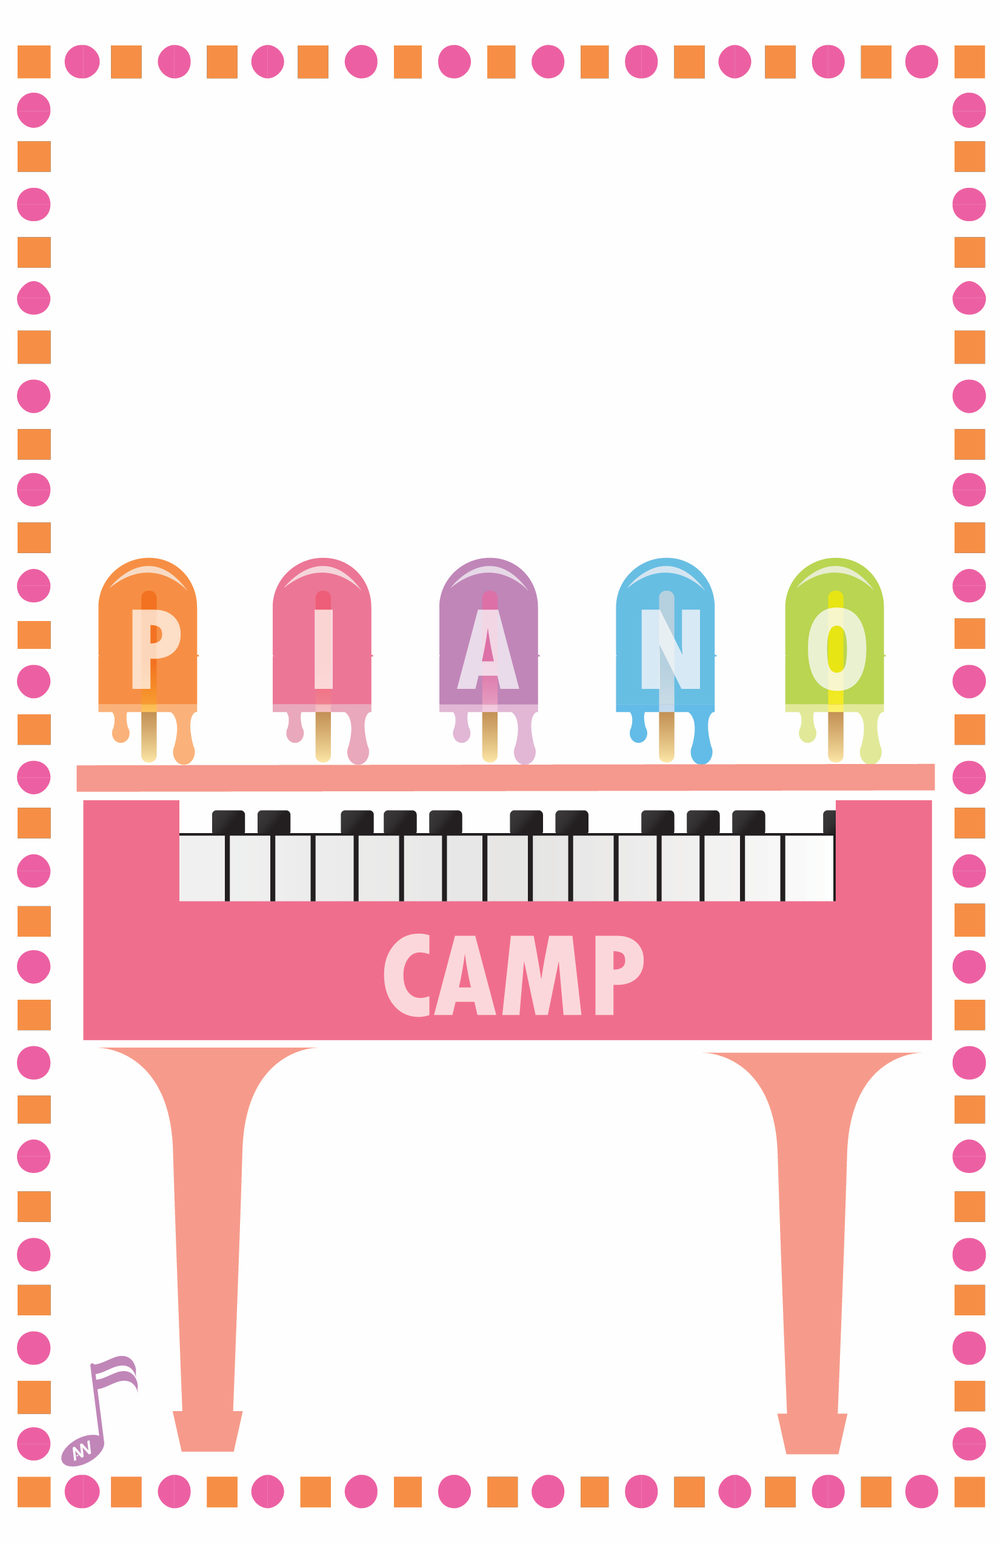 Popsicle-Piano-Camp-01.png